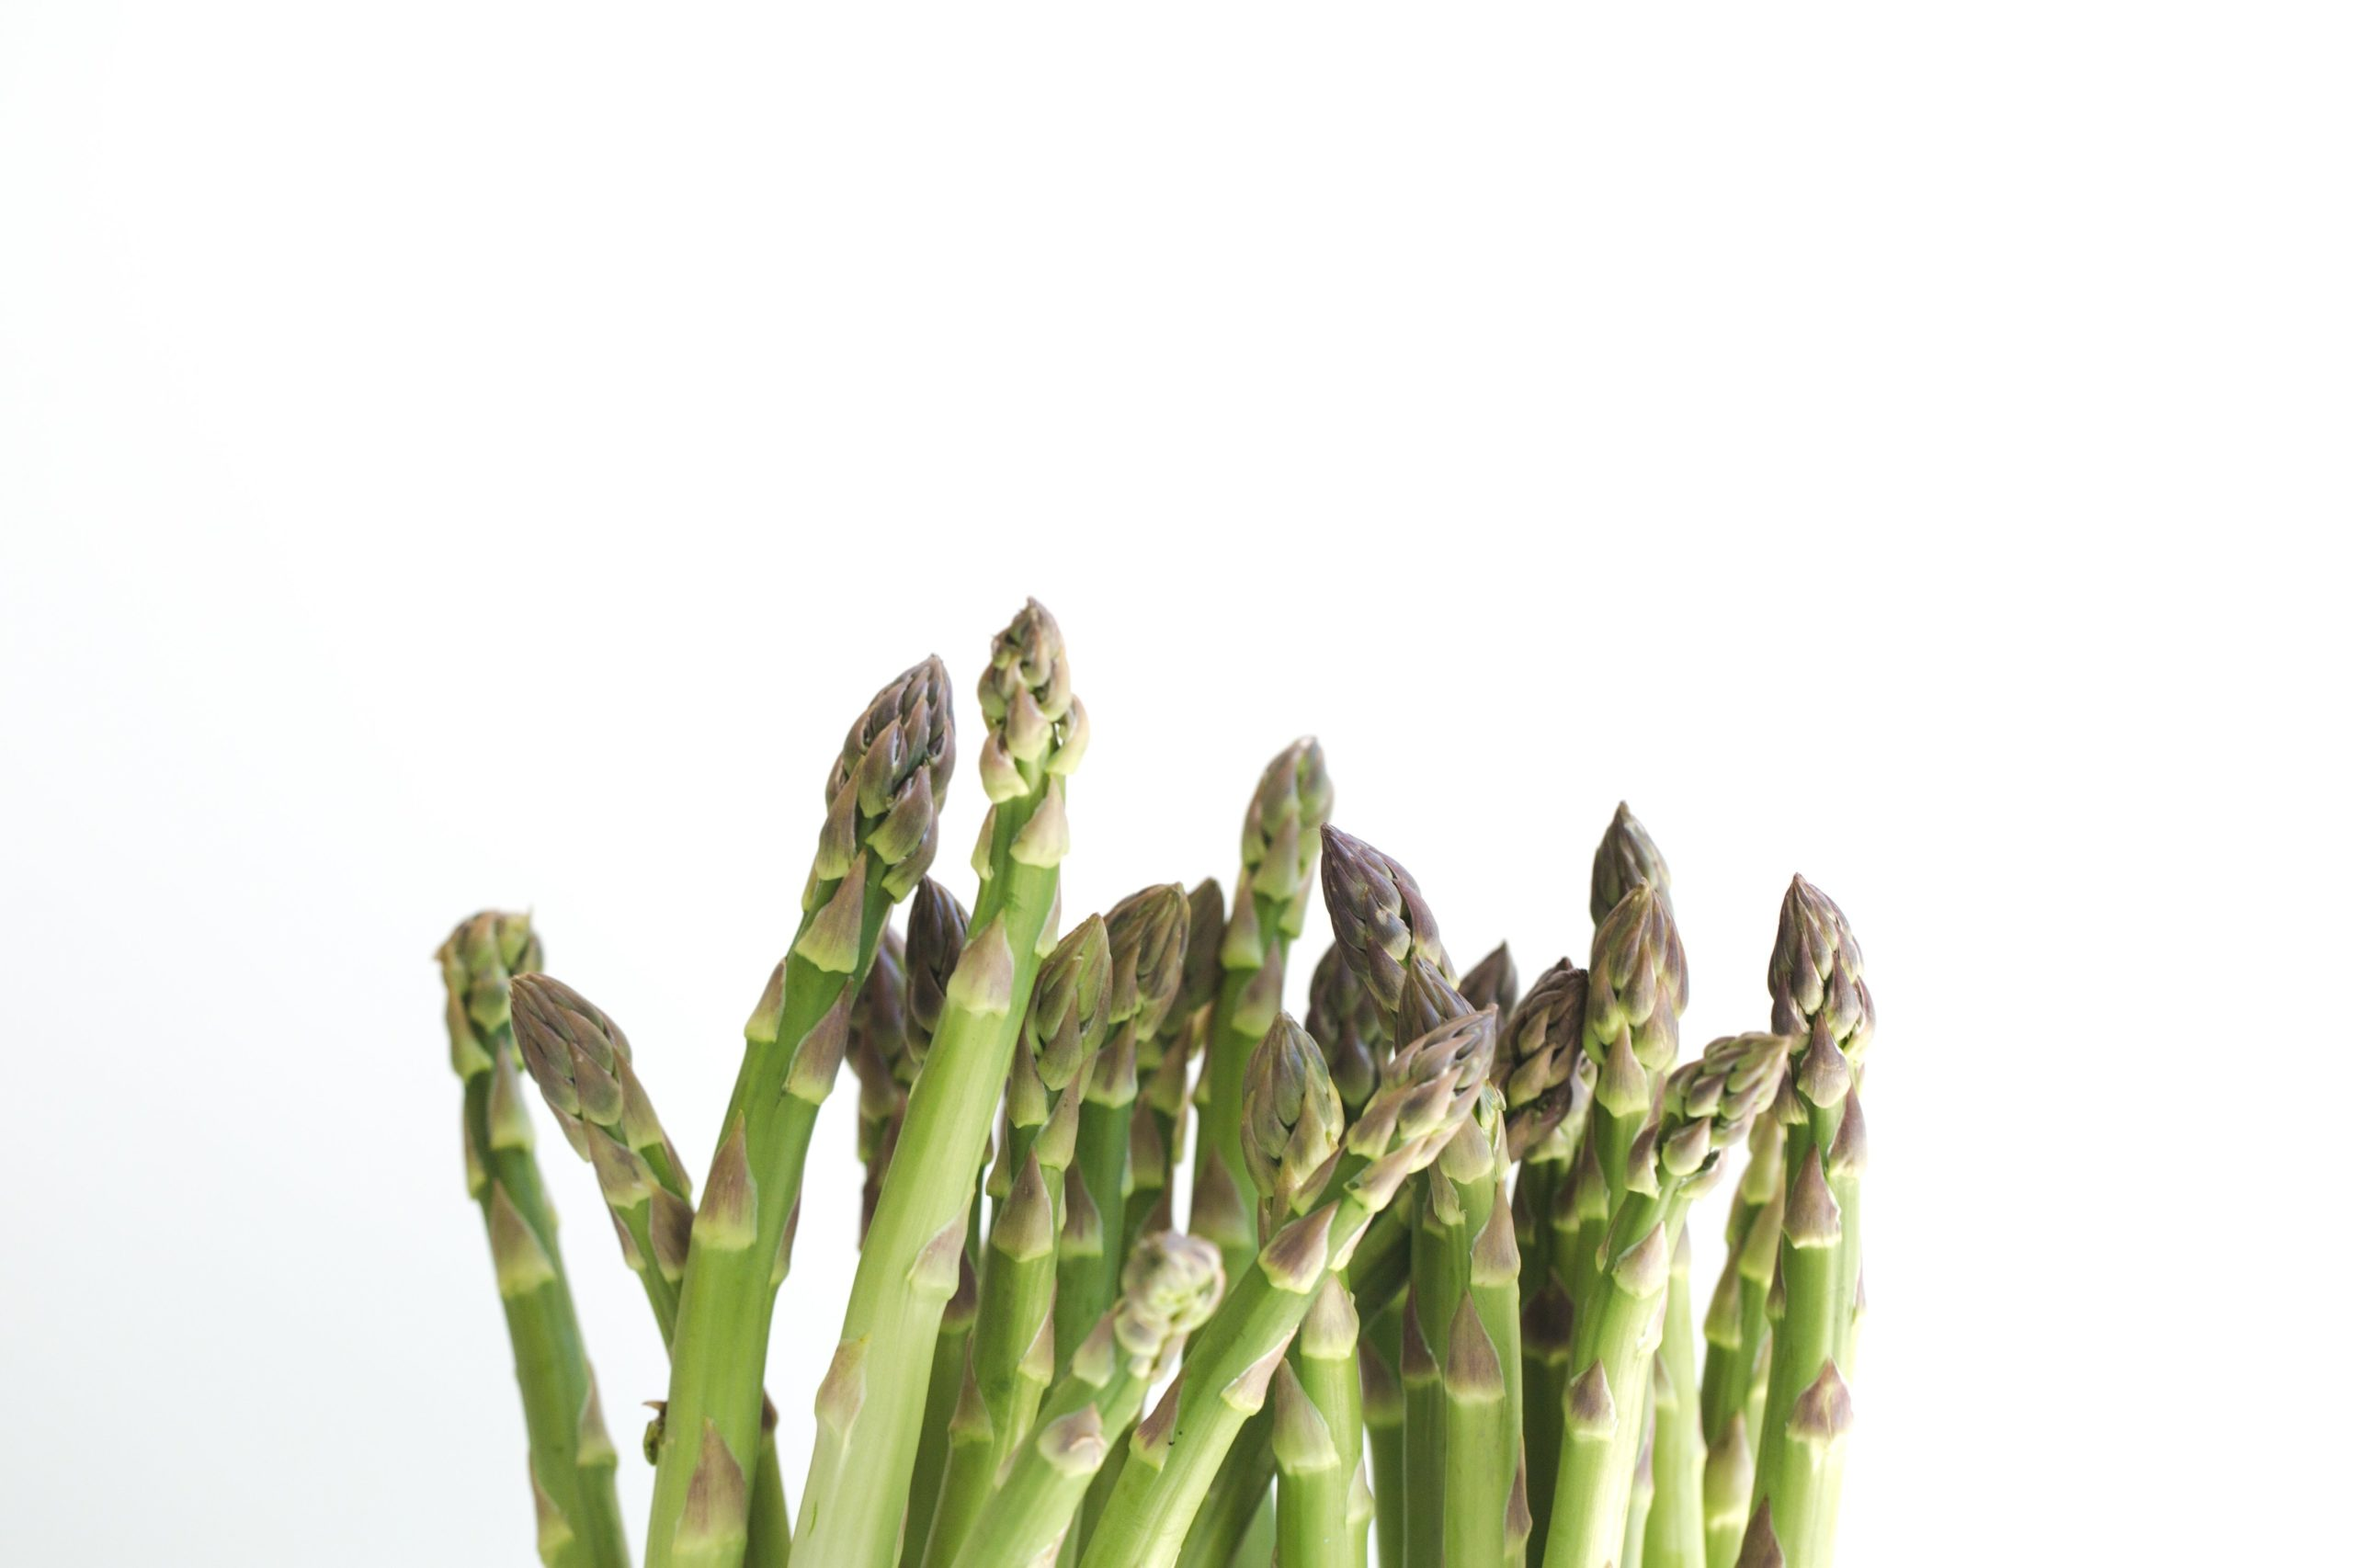 Asparagus Hangover Cure: Does It Work?